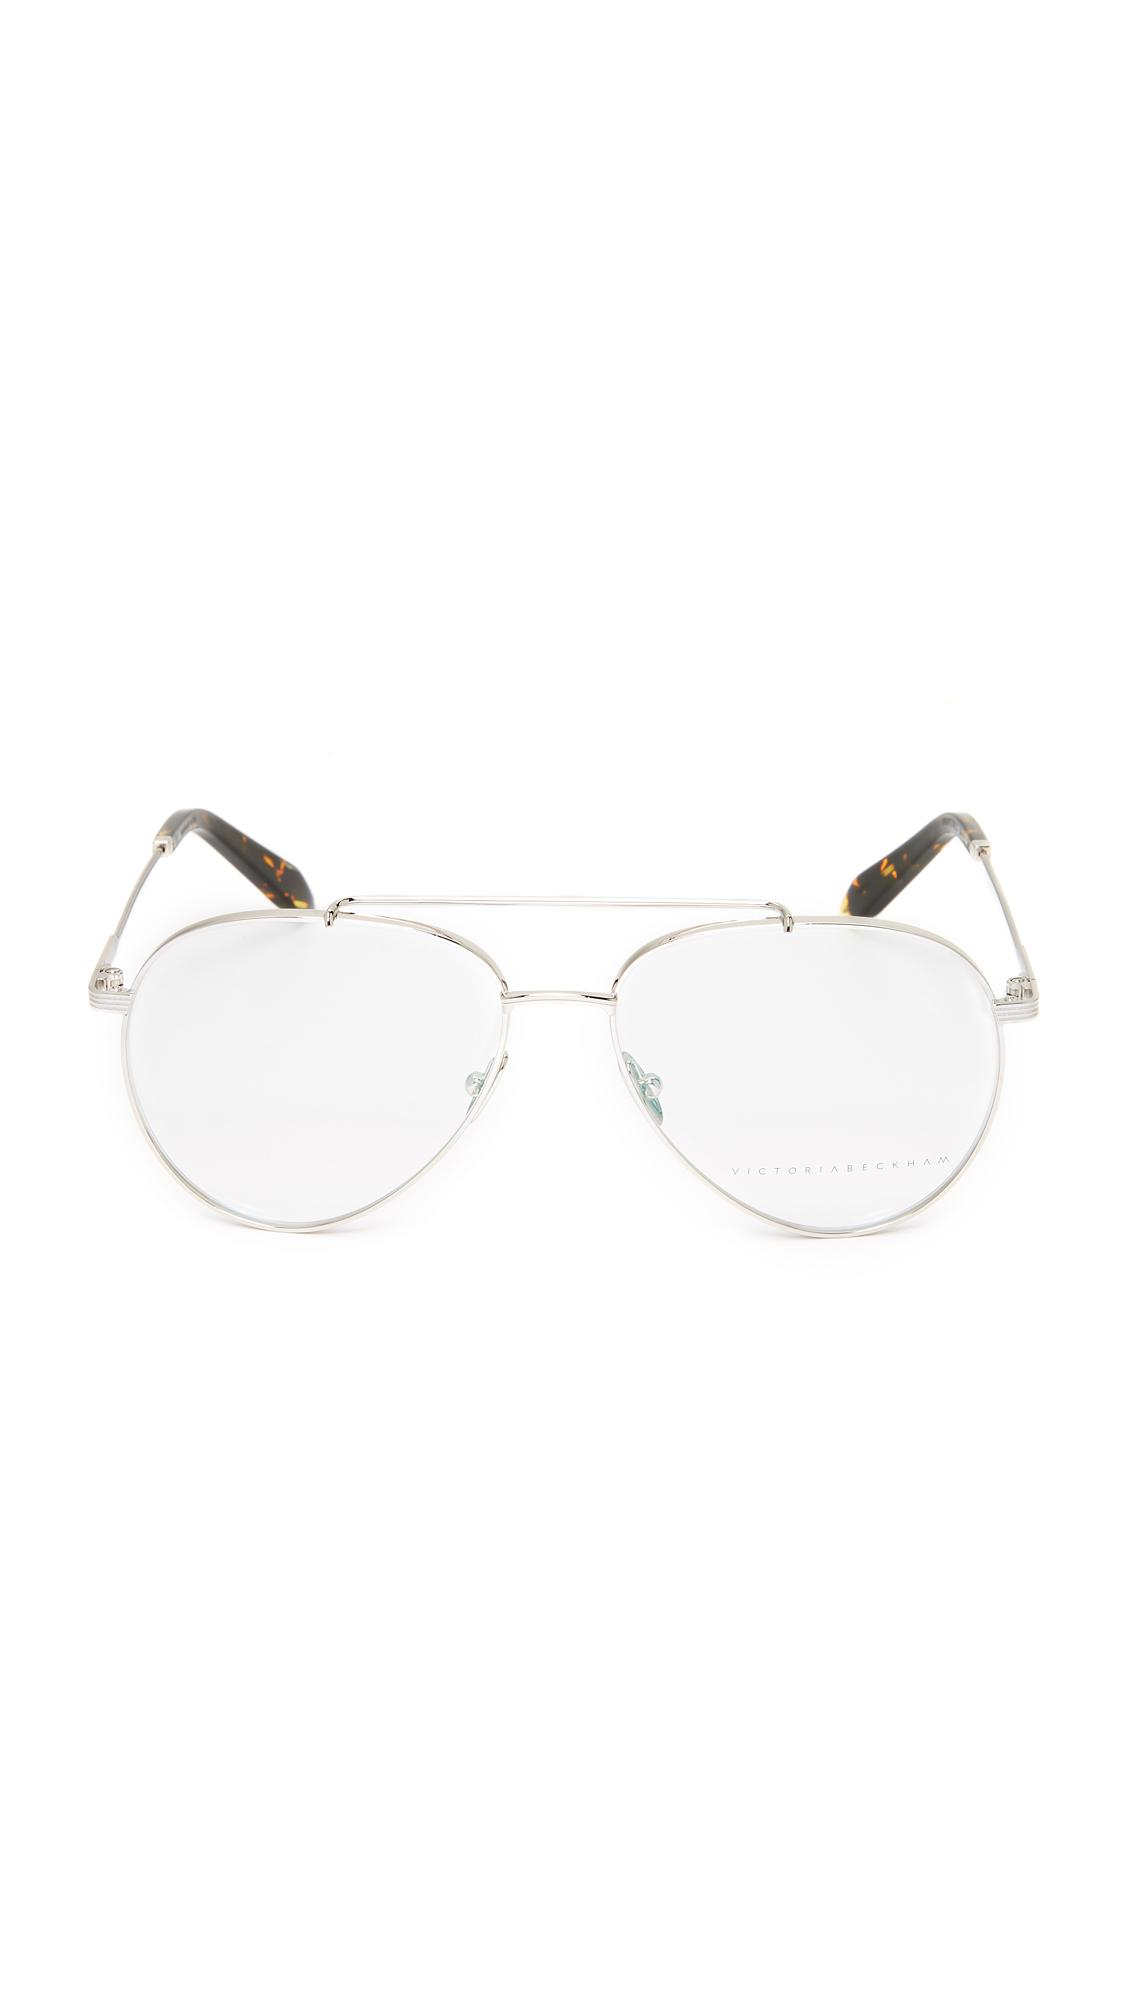 Victoria Beckham Grooved Aviator Glasses In Metallic Lyst